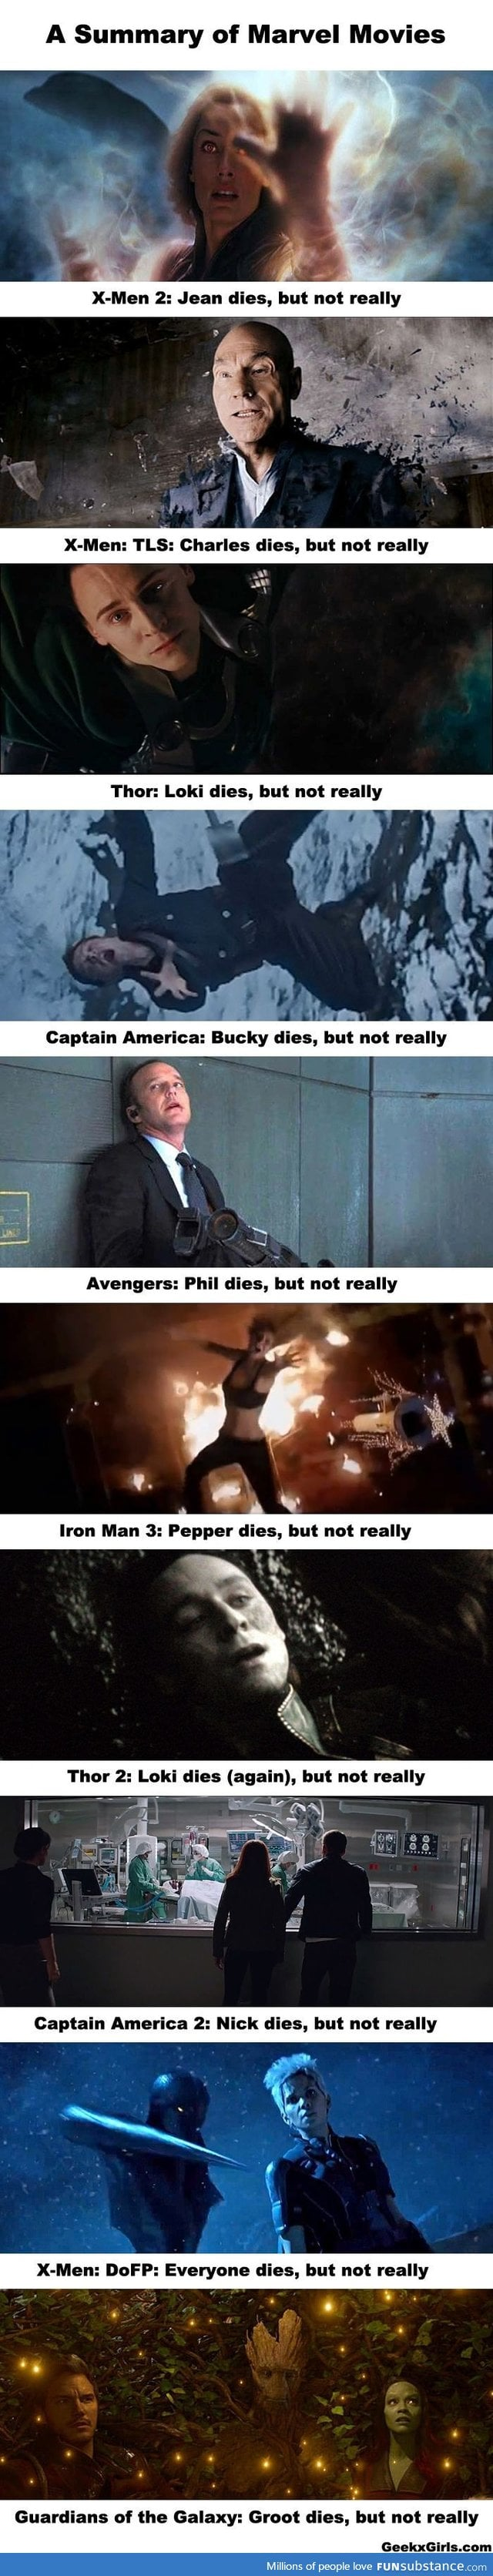 In Marvel movies, people die, but not really